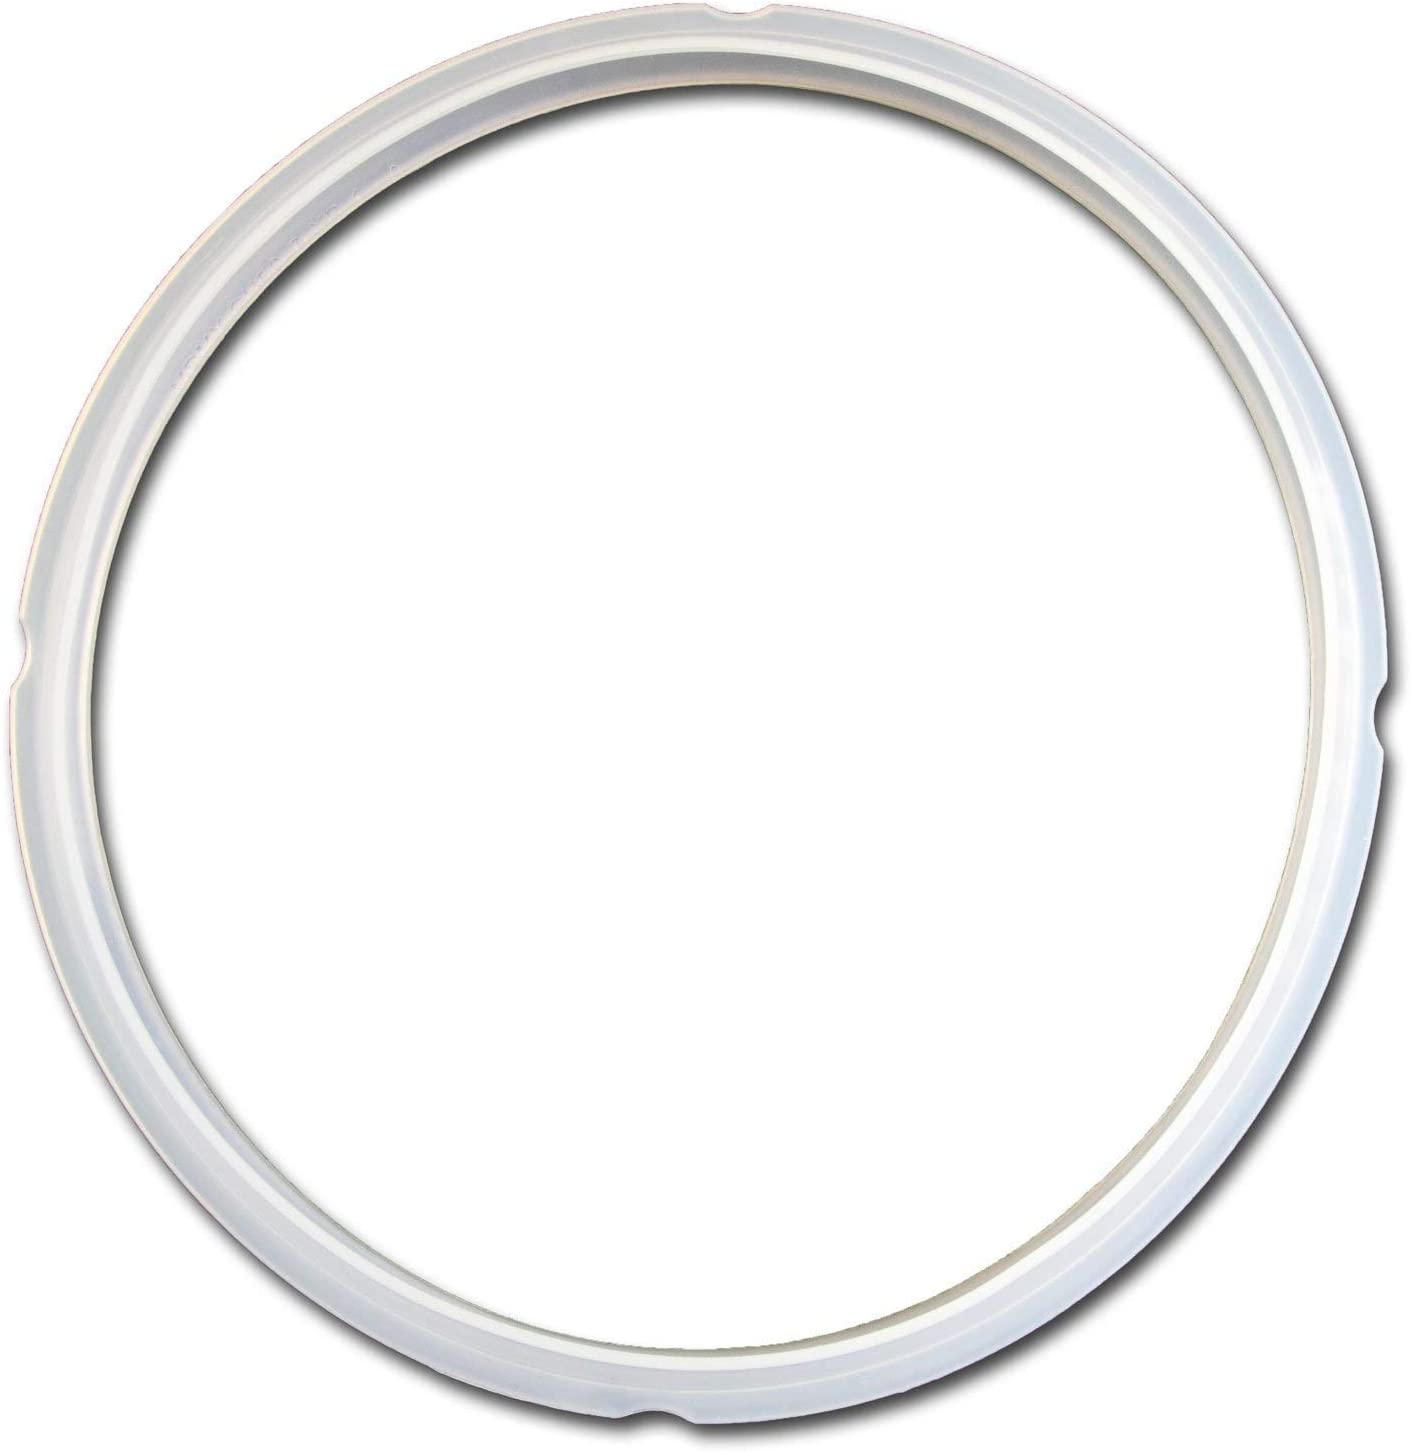 GJS Gourmet Electric Pressure Cooker Sealing Ring or Seal Ring or Rubber Gasket or Sealing Gasket- For Many 10 Liter, 12 Liter, 10 Quart, or 12 Quart Models